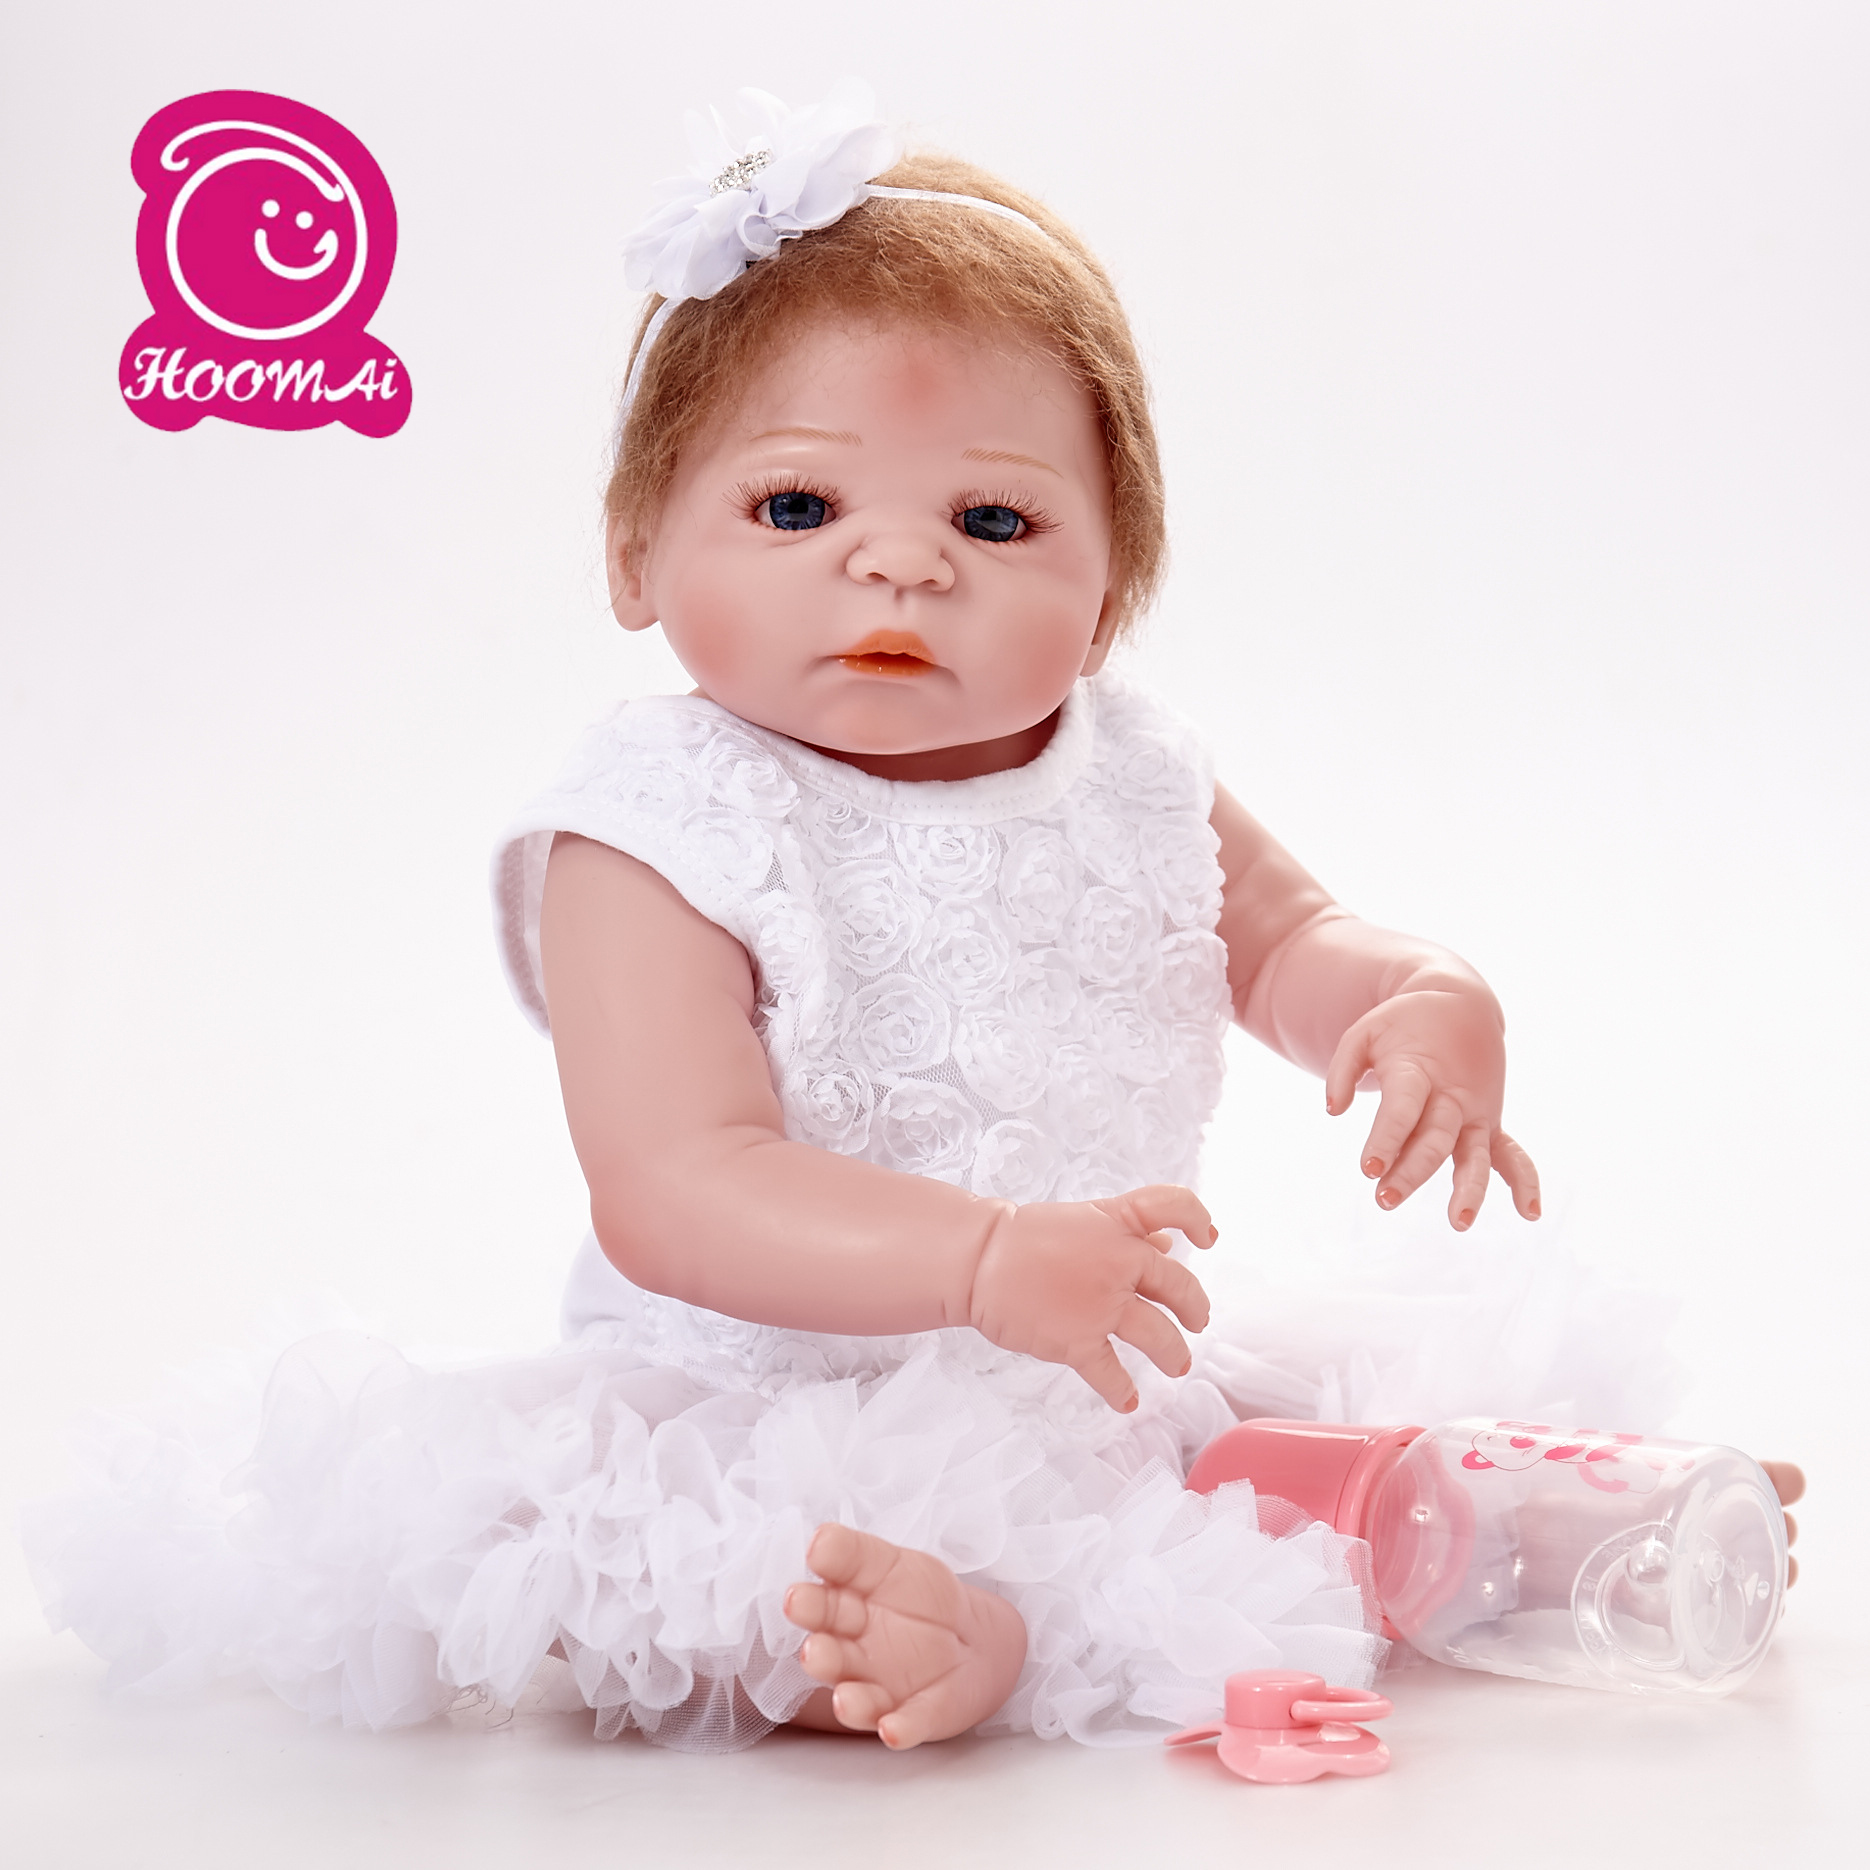 22 reborn dolls full body silicone reborn babies wig hair realistic girl bebe alive reborn bonecas kids bithday gifts toys22 reborn dolls full body silicone reborn babies wig hair realistic girl bebe alive reborn bonecas kids bithday gifts toys